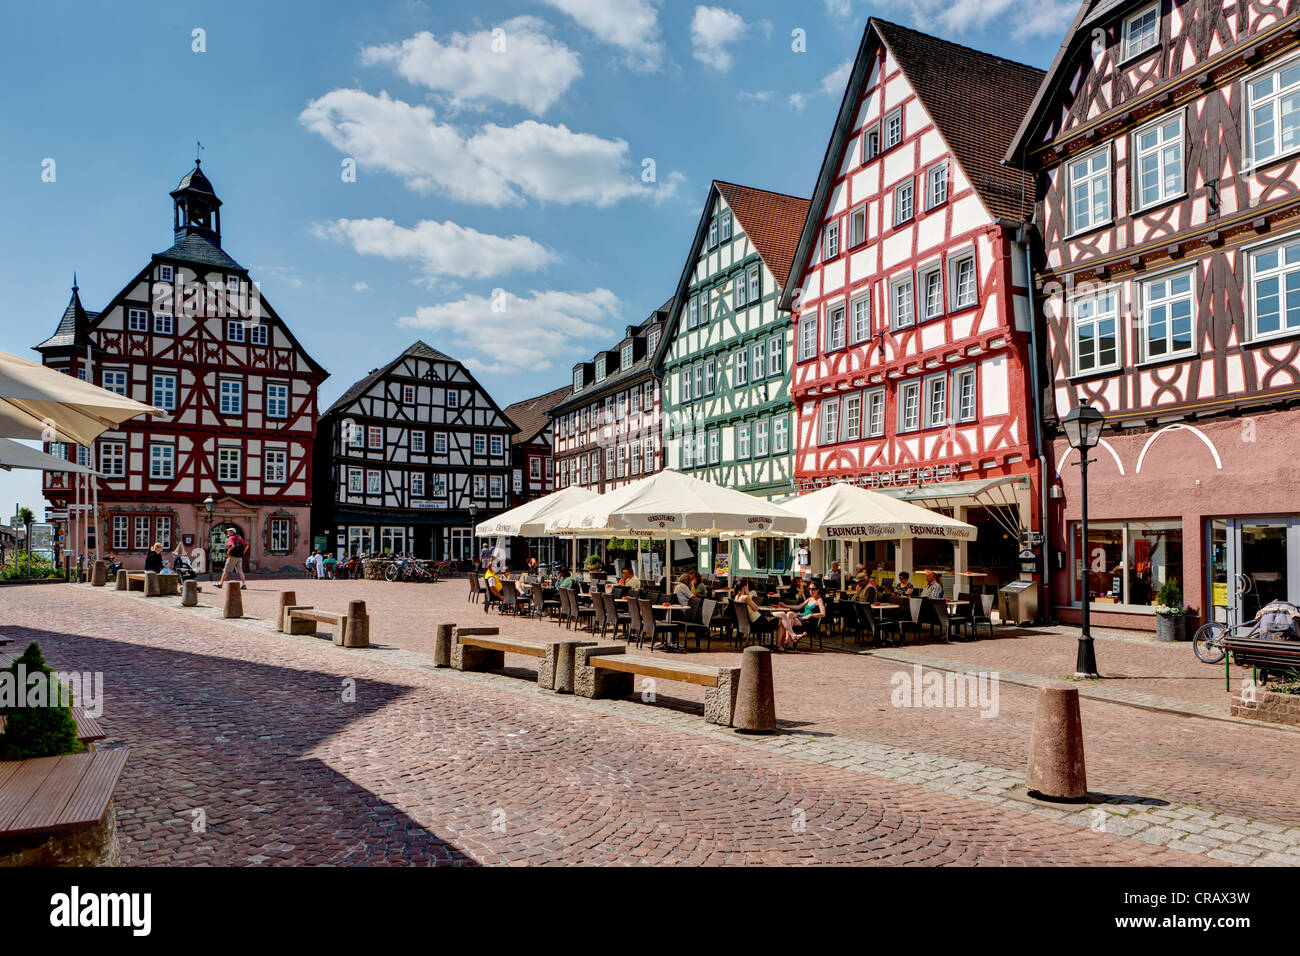 Historic centre of Gruenberg, with old post office, the town hall ...